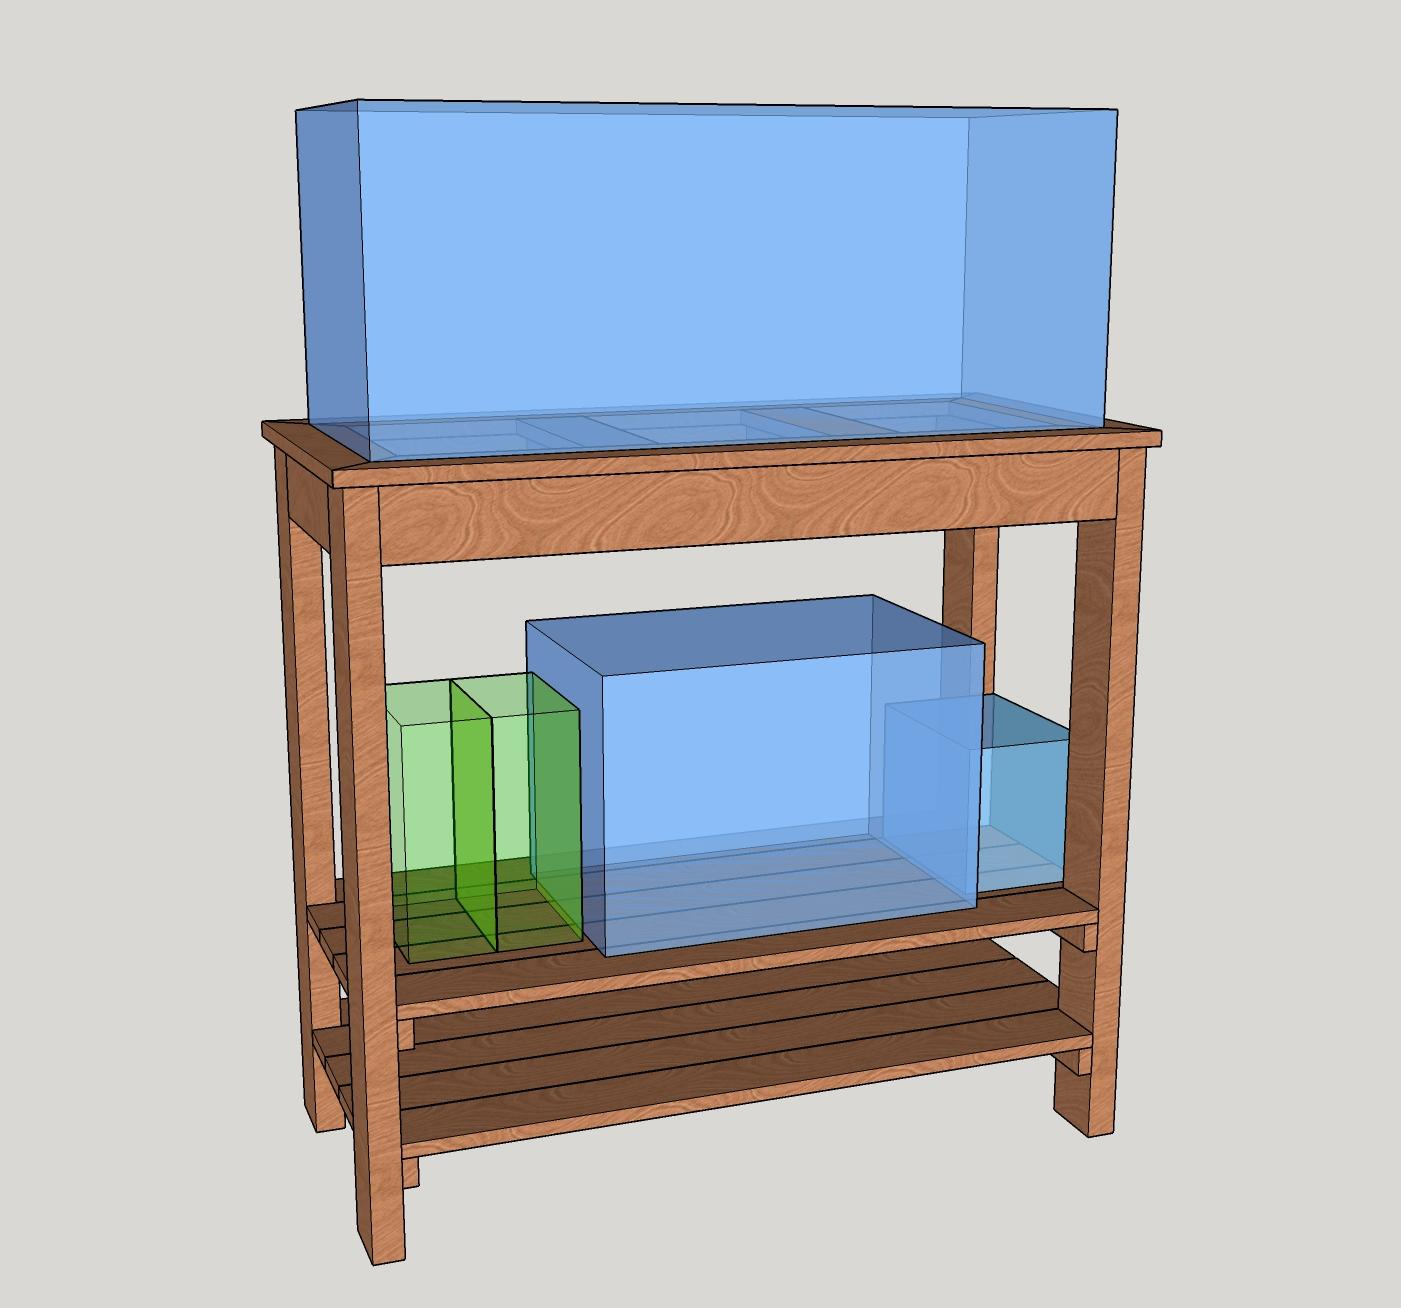 Second Draft Of Aquarium Stand With Shelves Showing The Tanks I Intend To Keep On It